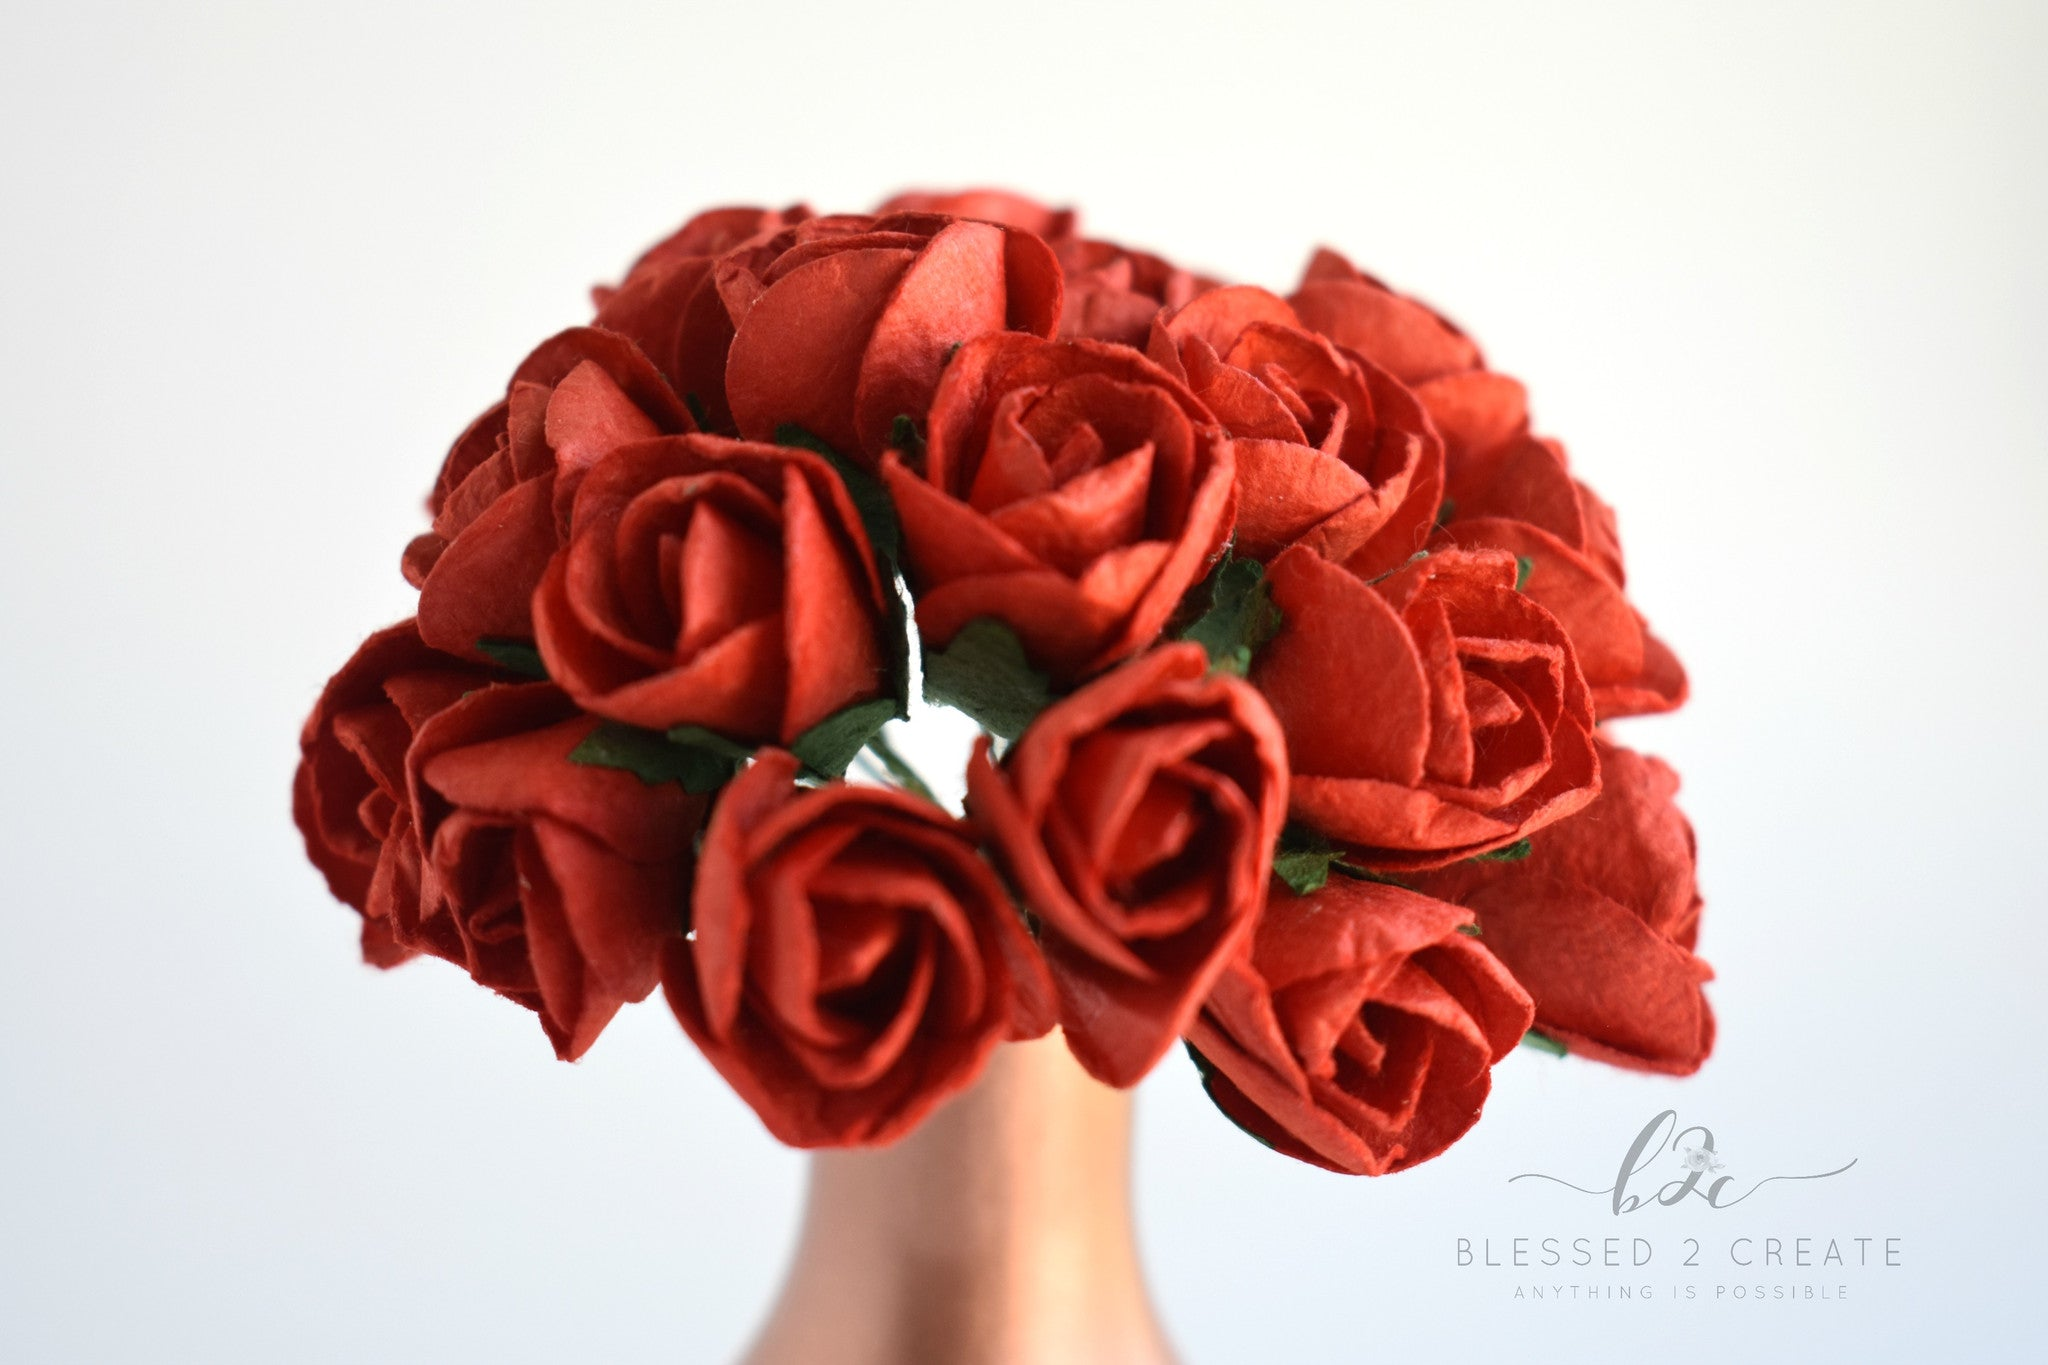 10 15mm Red Rose Buds Mulberry Paper Flowers Sprinkledwithfunfetti